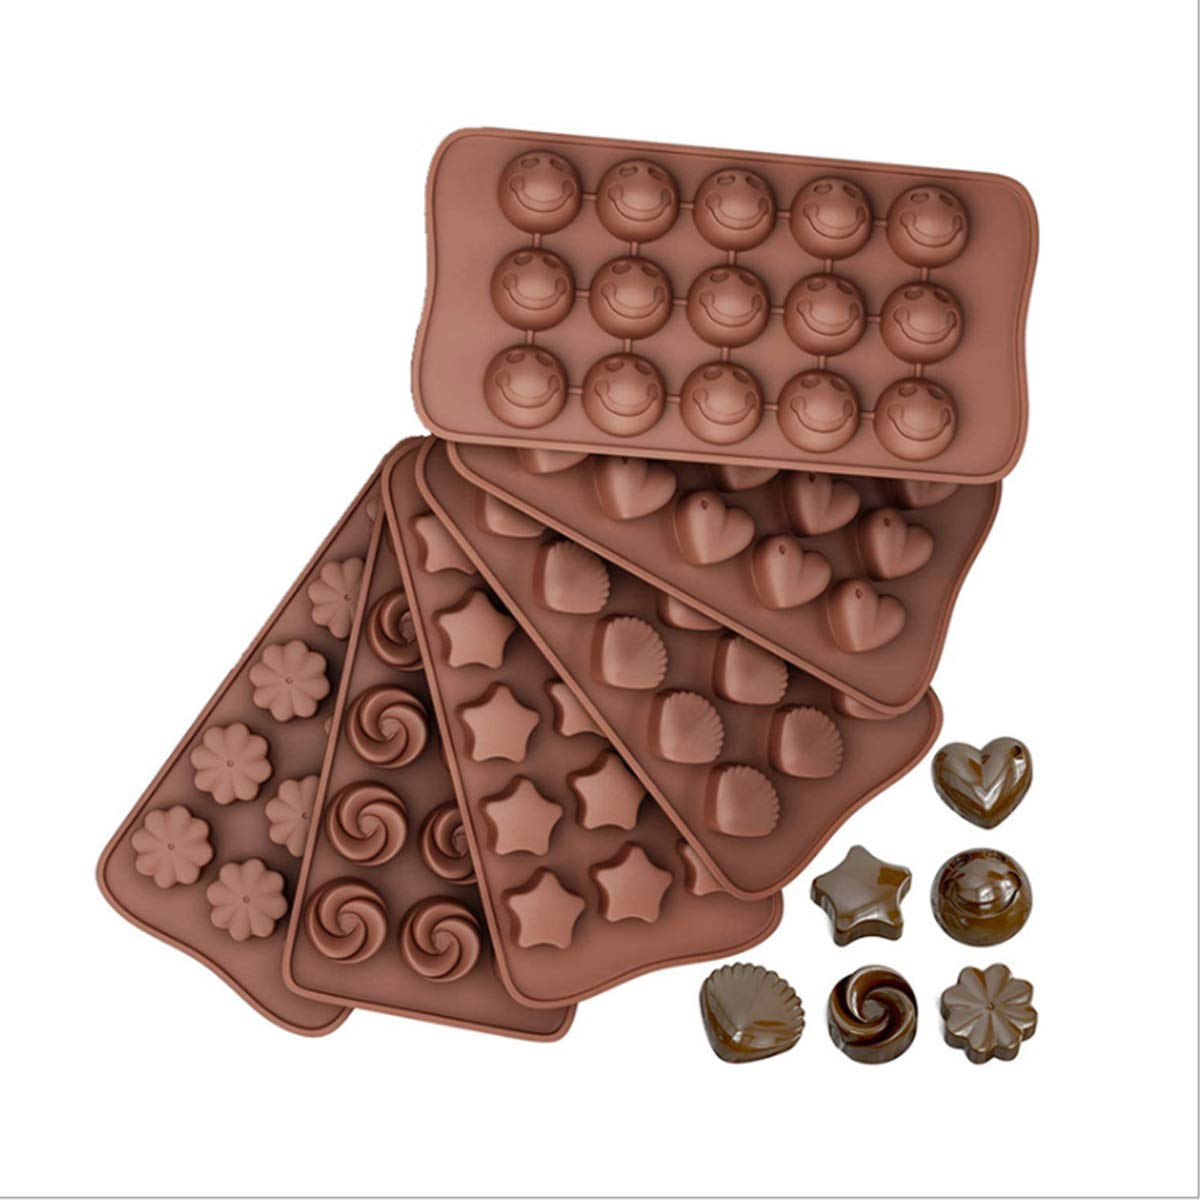 Creativity silicone chocolate fructose cake baking mold pudding ice grid candy shaping silicone mold  smiley, heart, animal